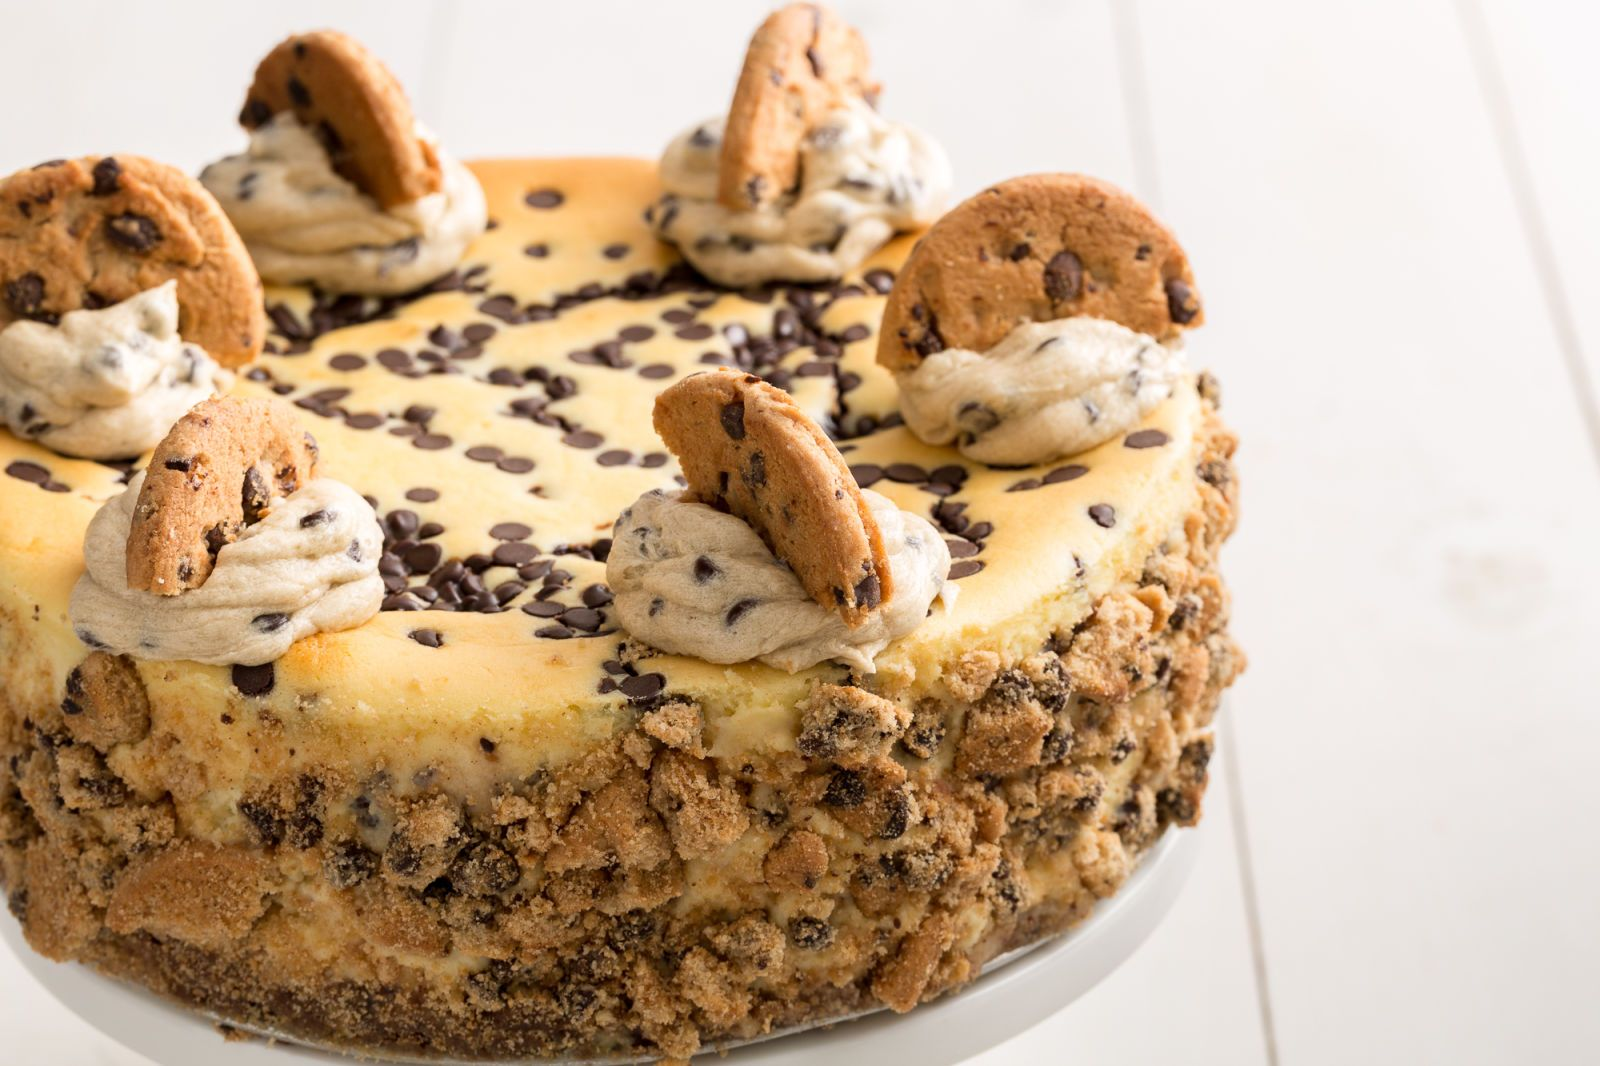 This Chocolate Chip Cookie Dough Cheesecake Is the Best Thing Ever